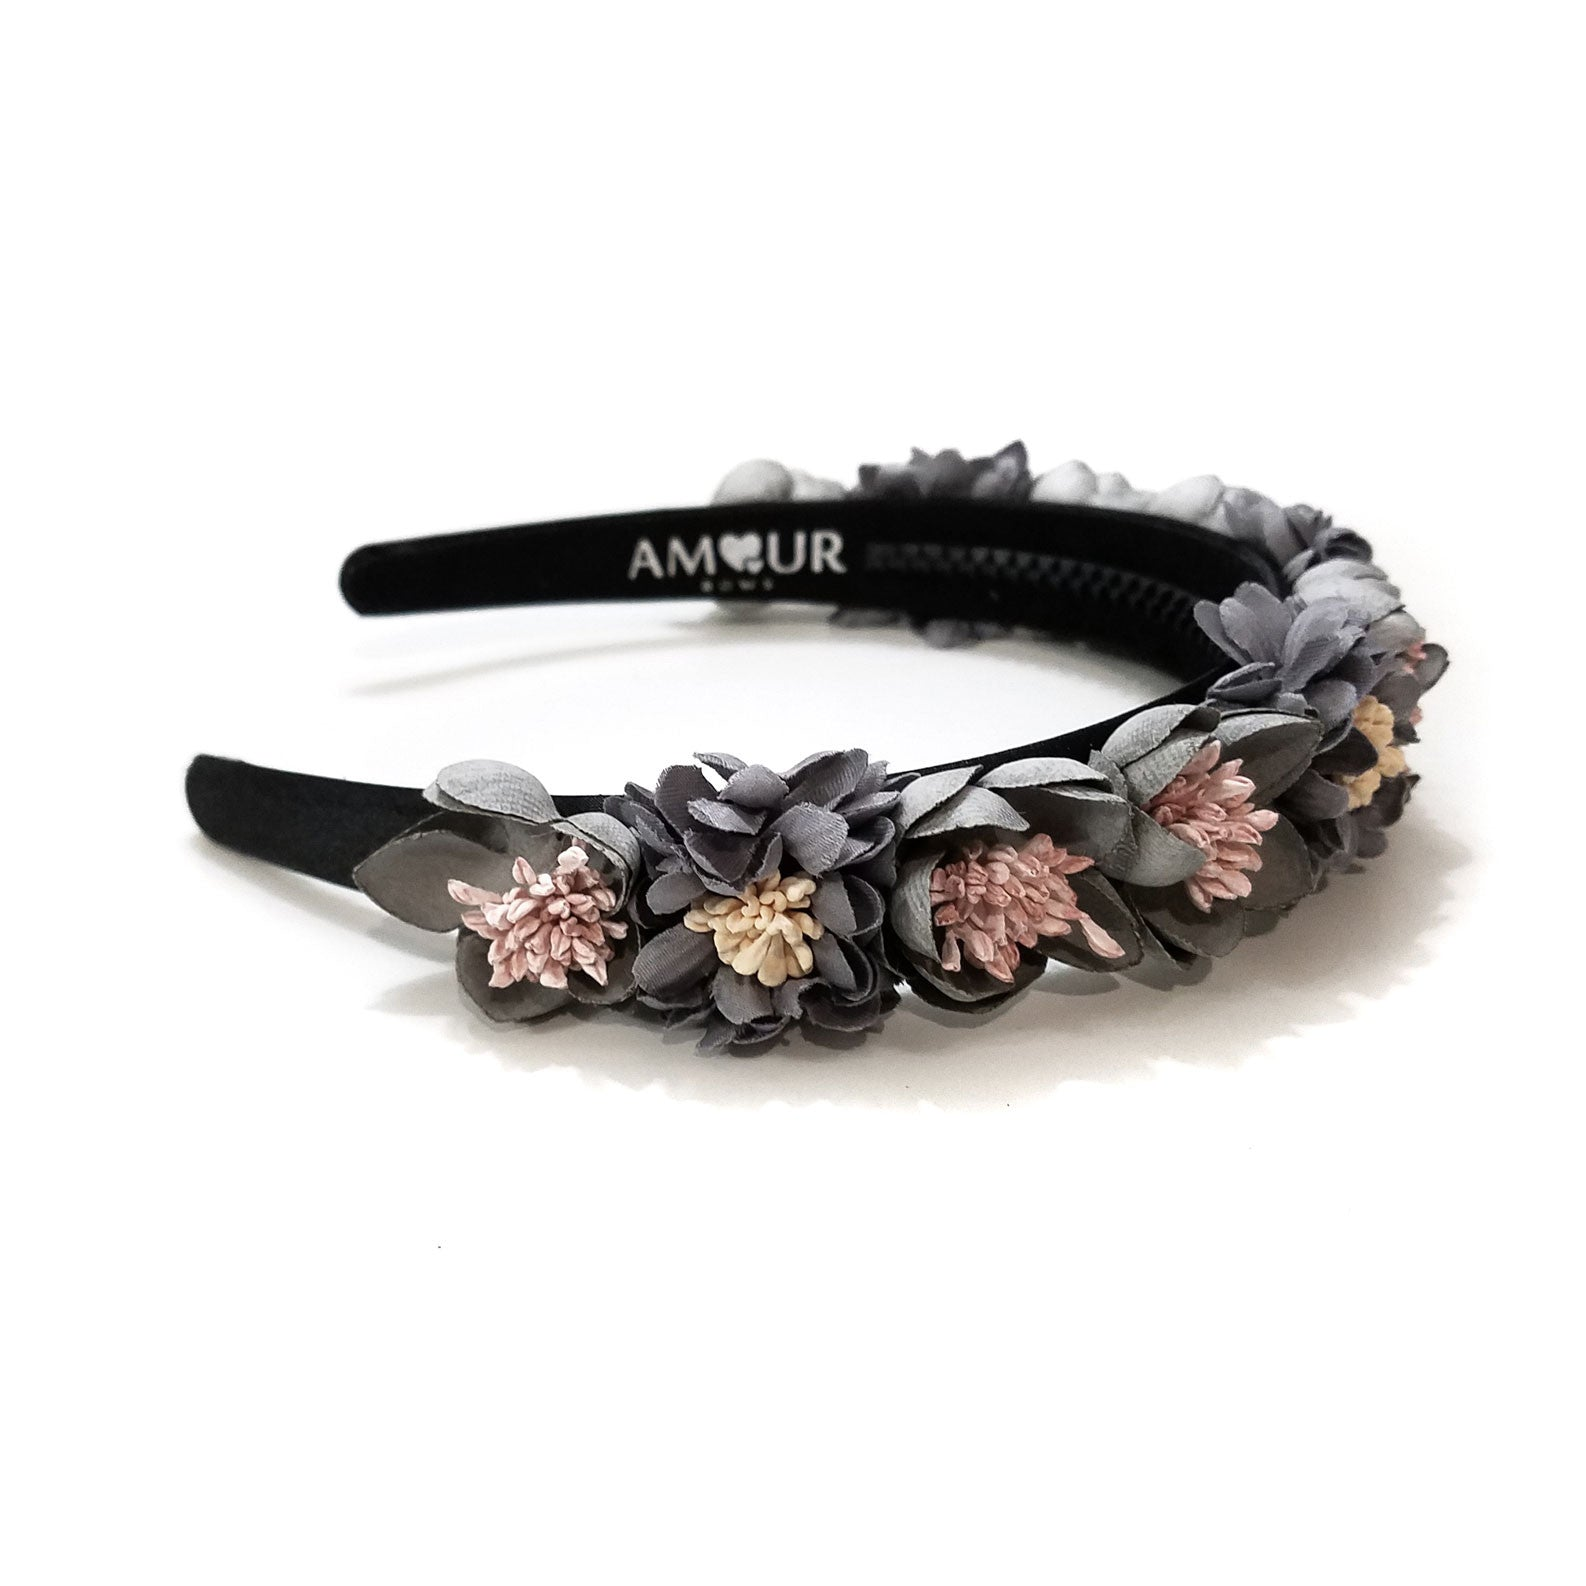 Amour Bows Dusty Blue/Grey Brave Headband - Ladida